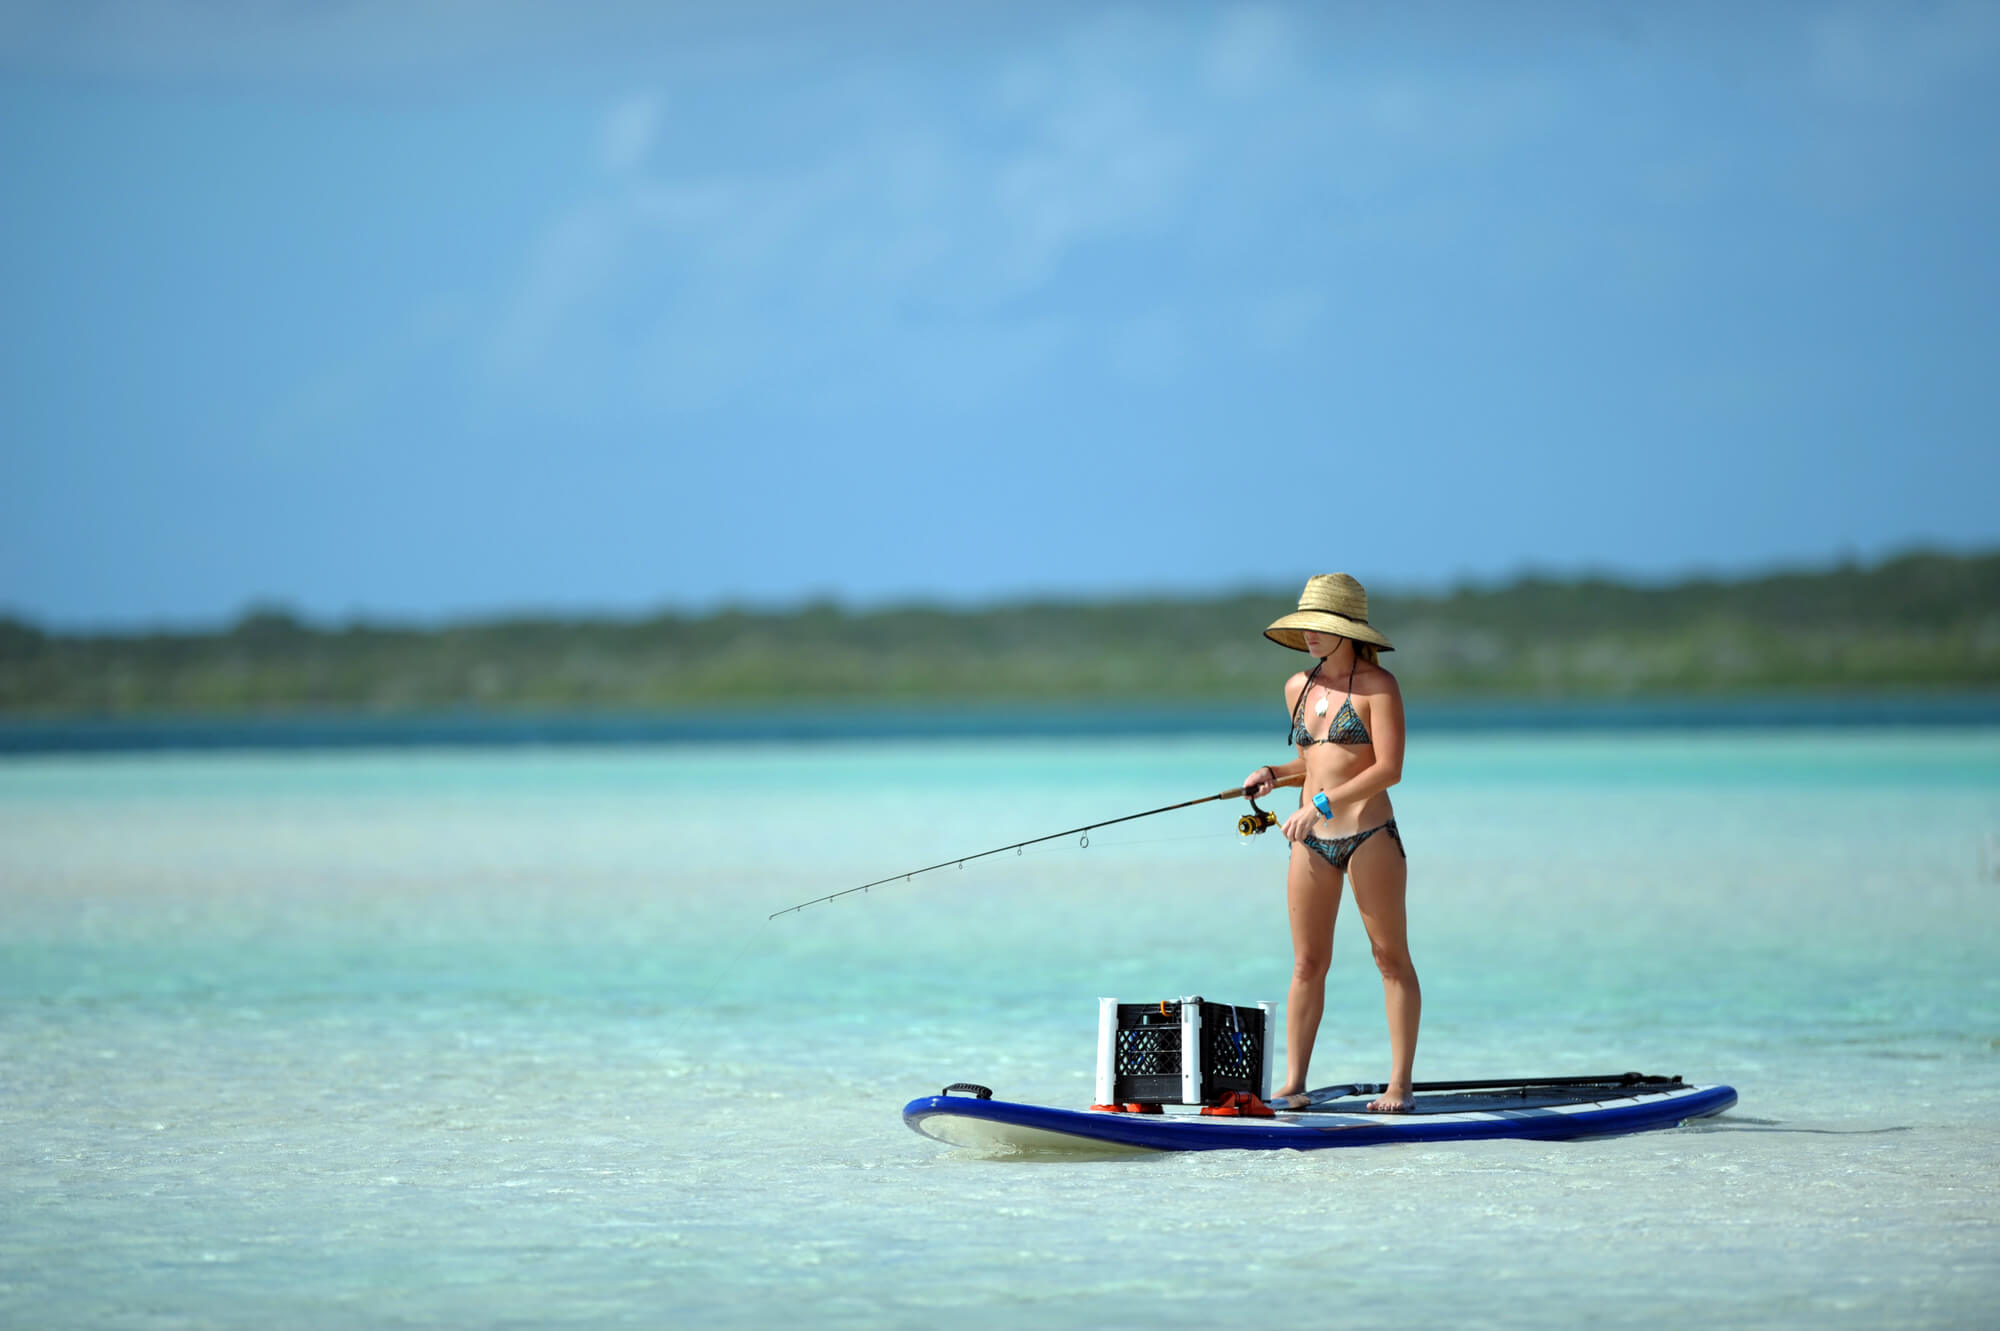 Woman Paddle Board Fishing in the hot sun with hat and sunglasses